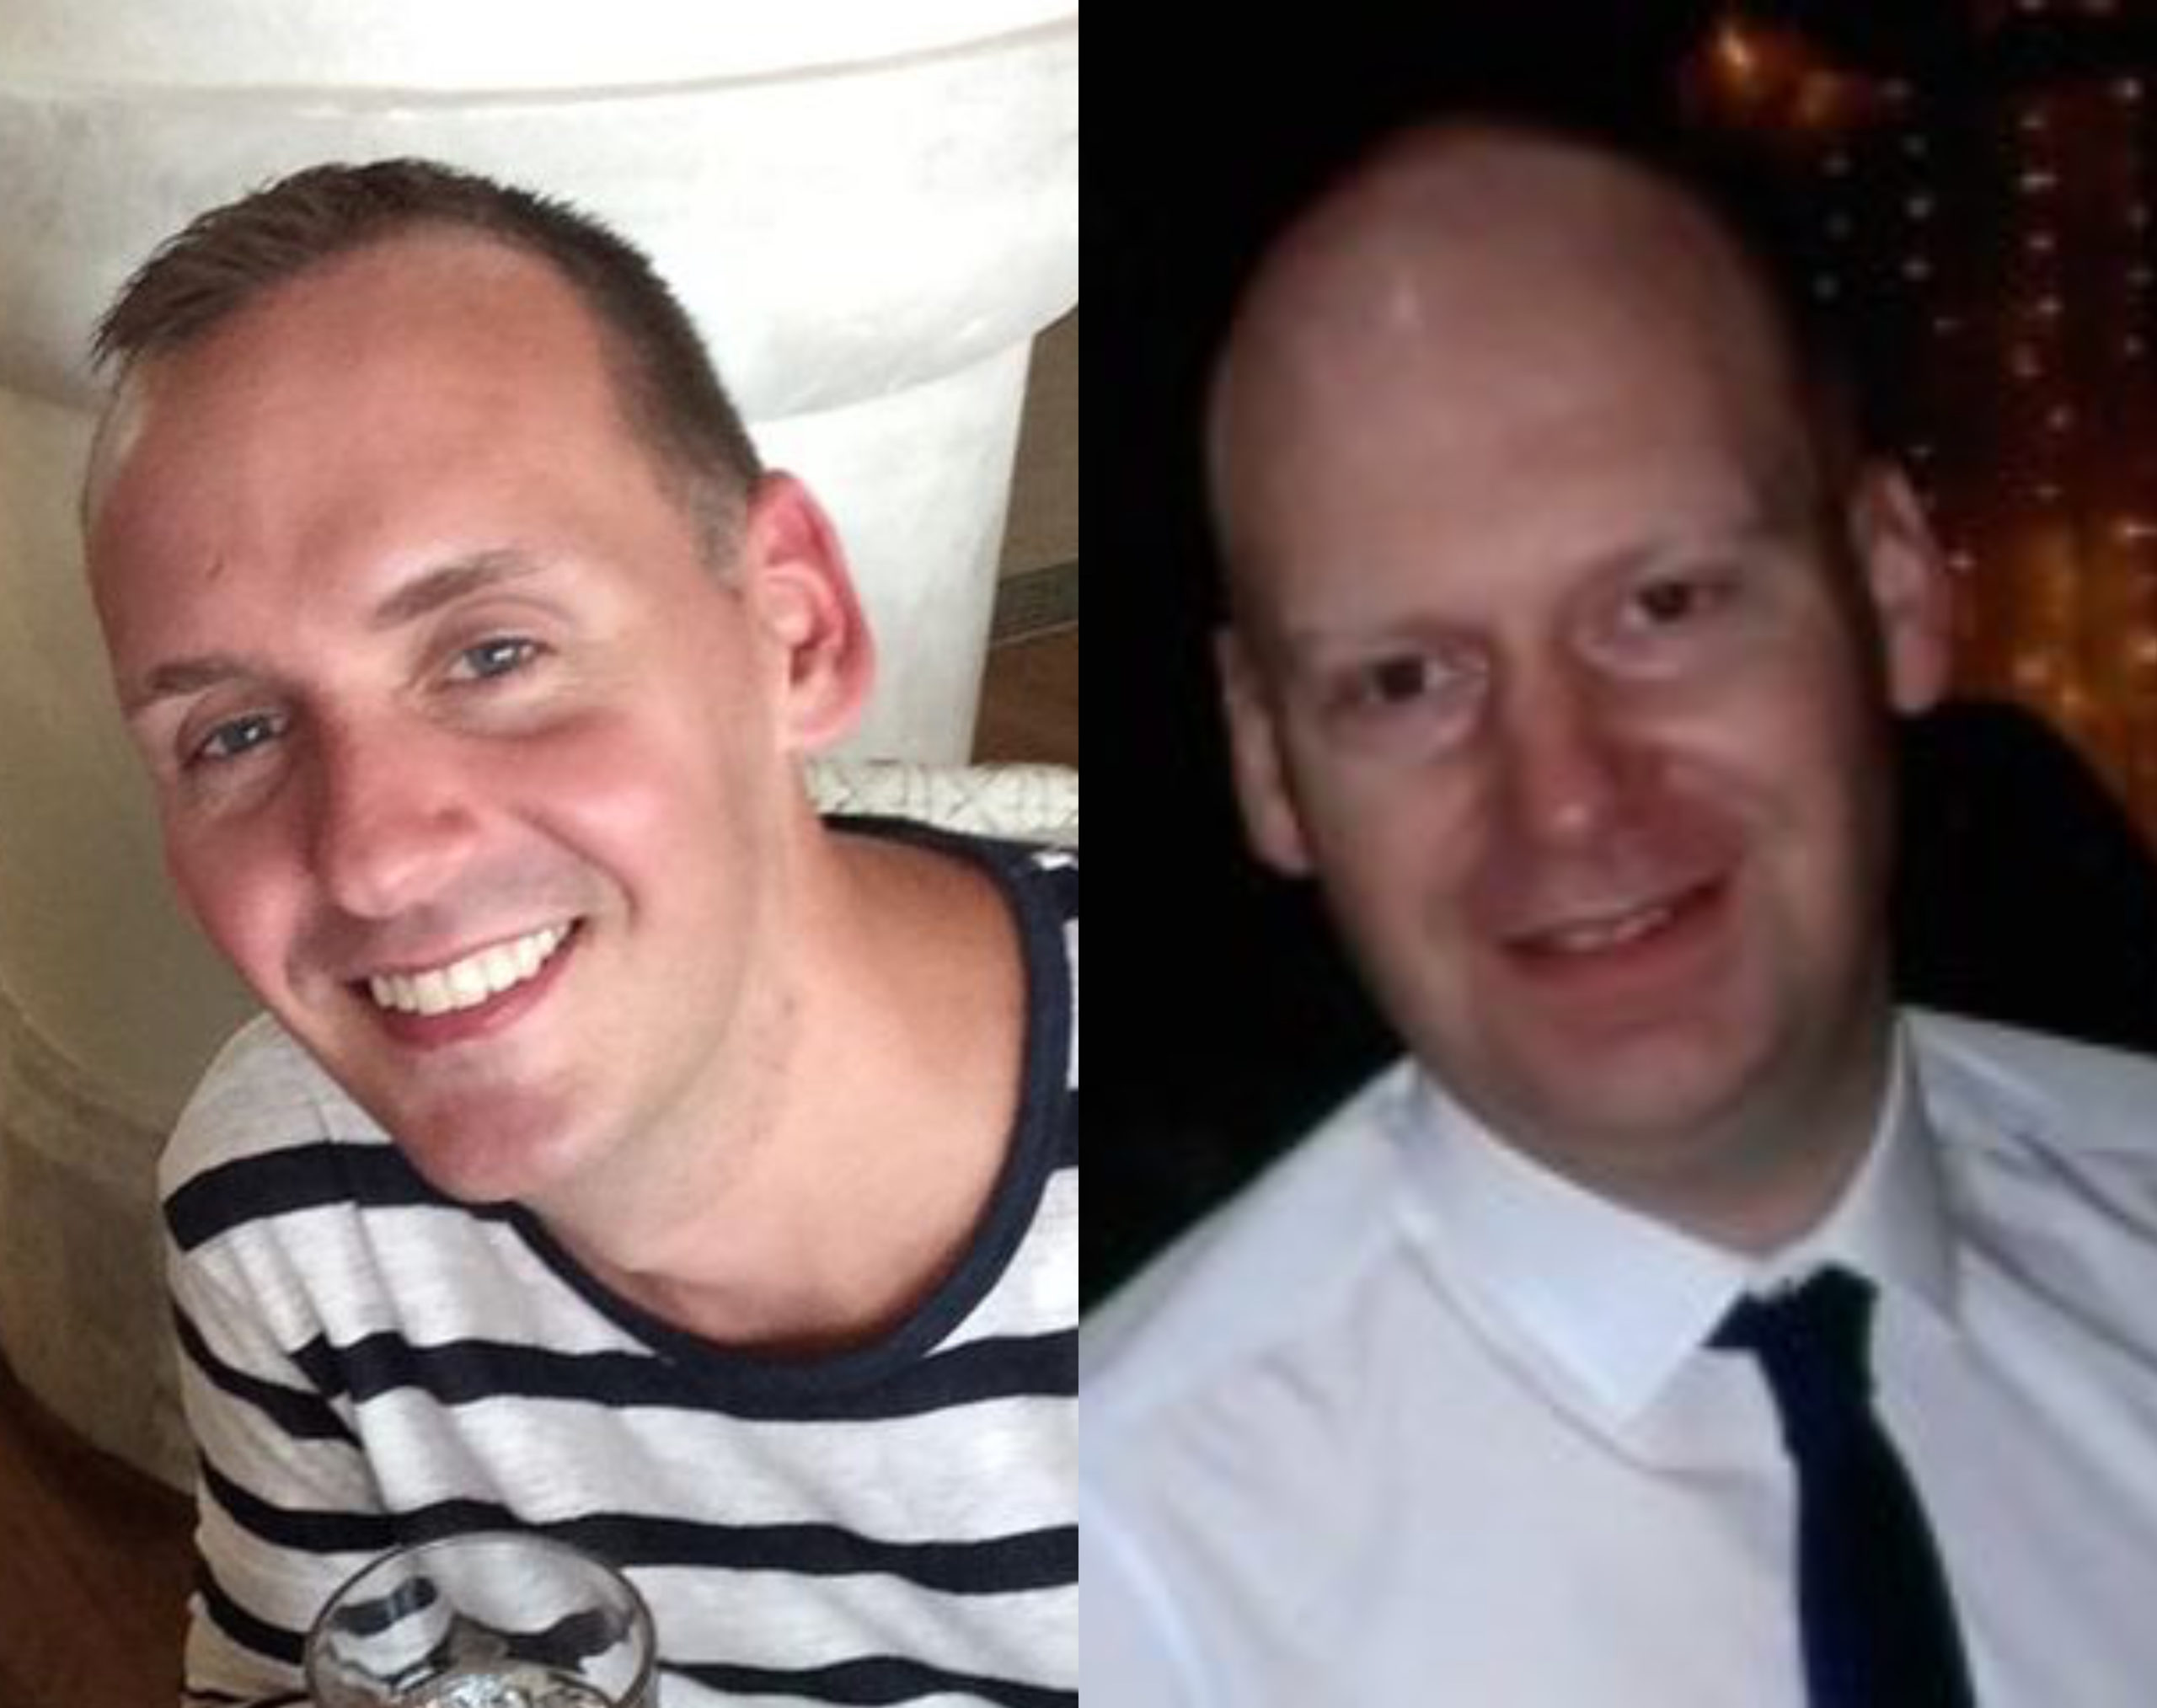 Two queer men who lost their lives after a lone man began stabbing people in Reading, England, have been named as Joe Ritchie-Bennett (L) and James Furlong (R). (Facebook/Thames Valley Police)